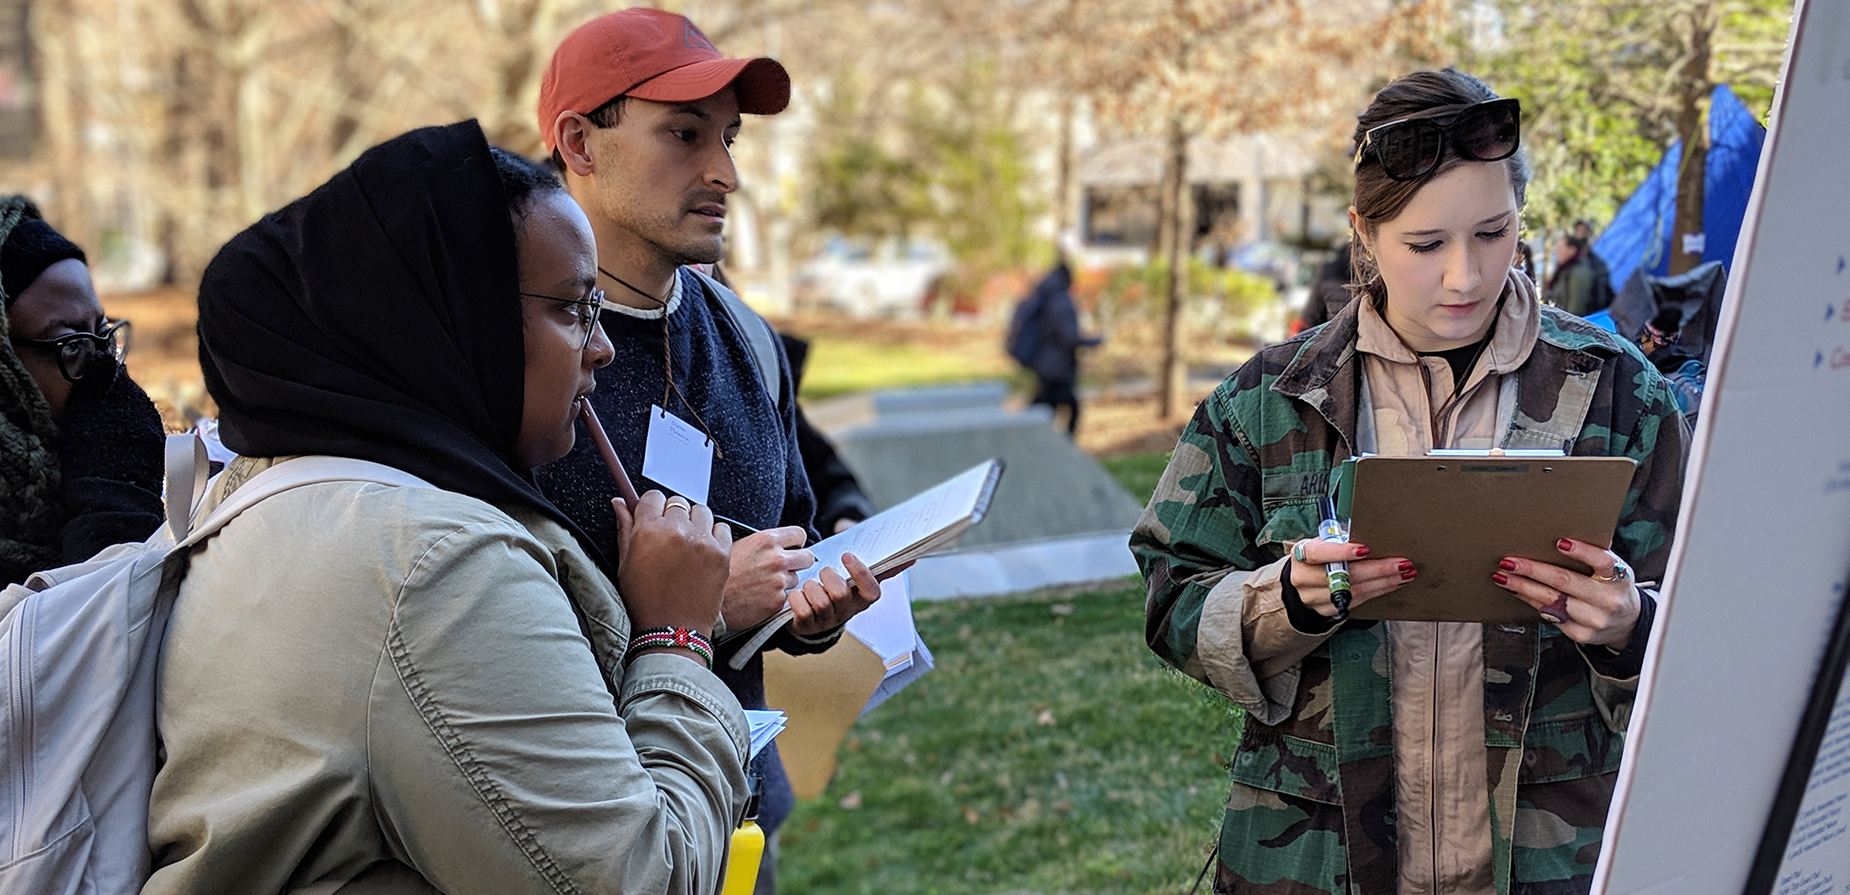 Emergency Response and Recovery Branch staff working through the Refugee Simulation exercise with MPH students during the Health in Complex Humanitarian Emergencies course at Emory University's Rollins School of Public Health (January, 2020). Photo: Leah Dick